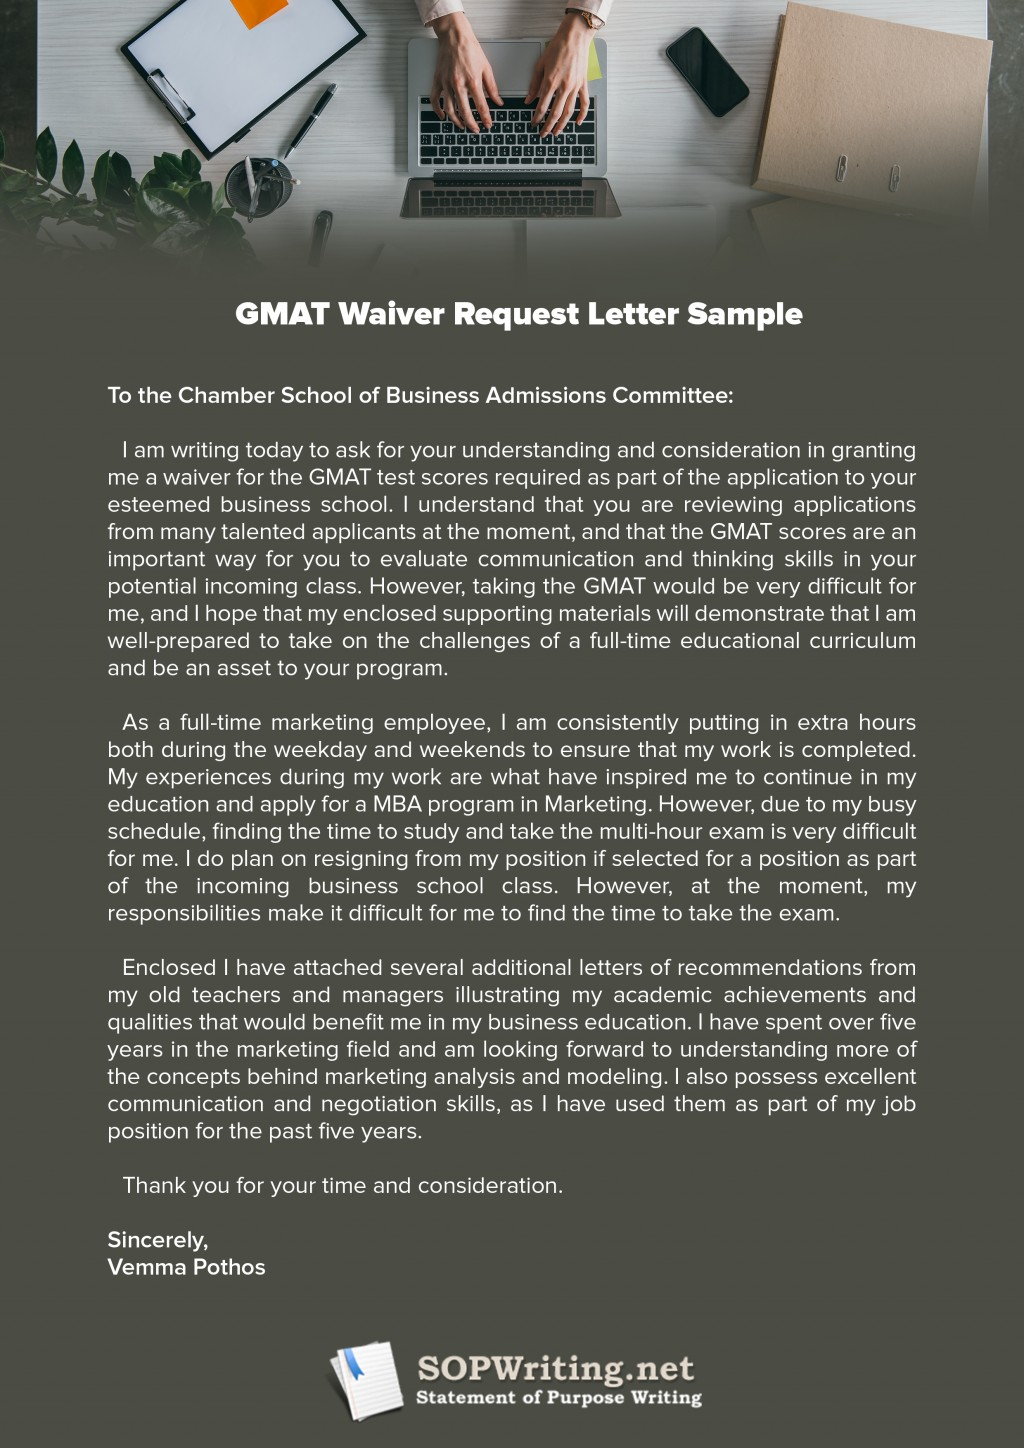 013 Essay Example Gmat Samples Coursework Writing Service Luhomeworkyrma Sample Analysis Of An Issue Waiver Request L Questions Awa Topics Free Application Pdf Shocking Essays Download Large